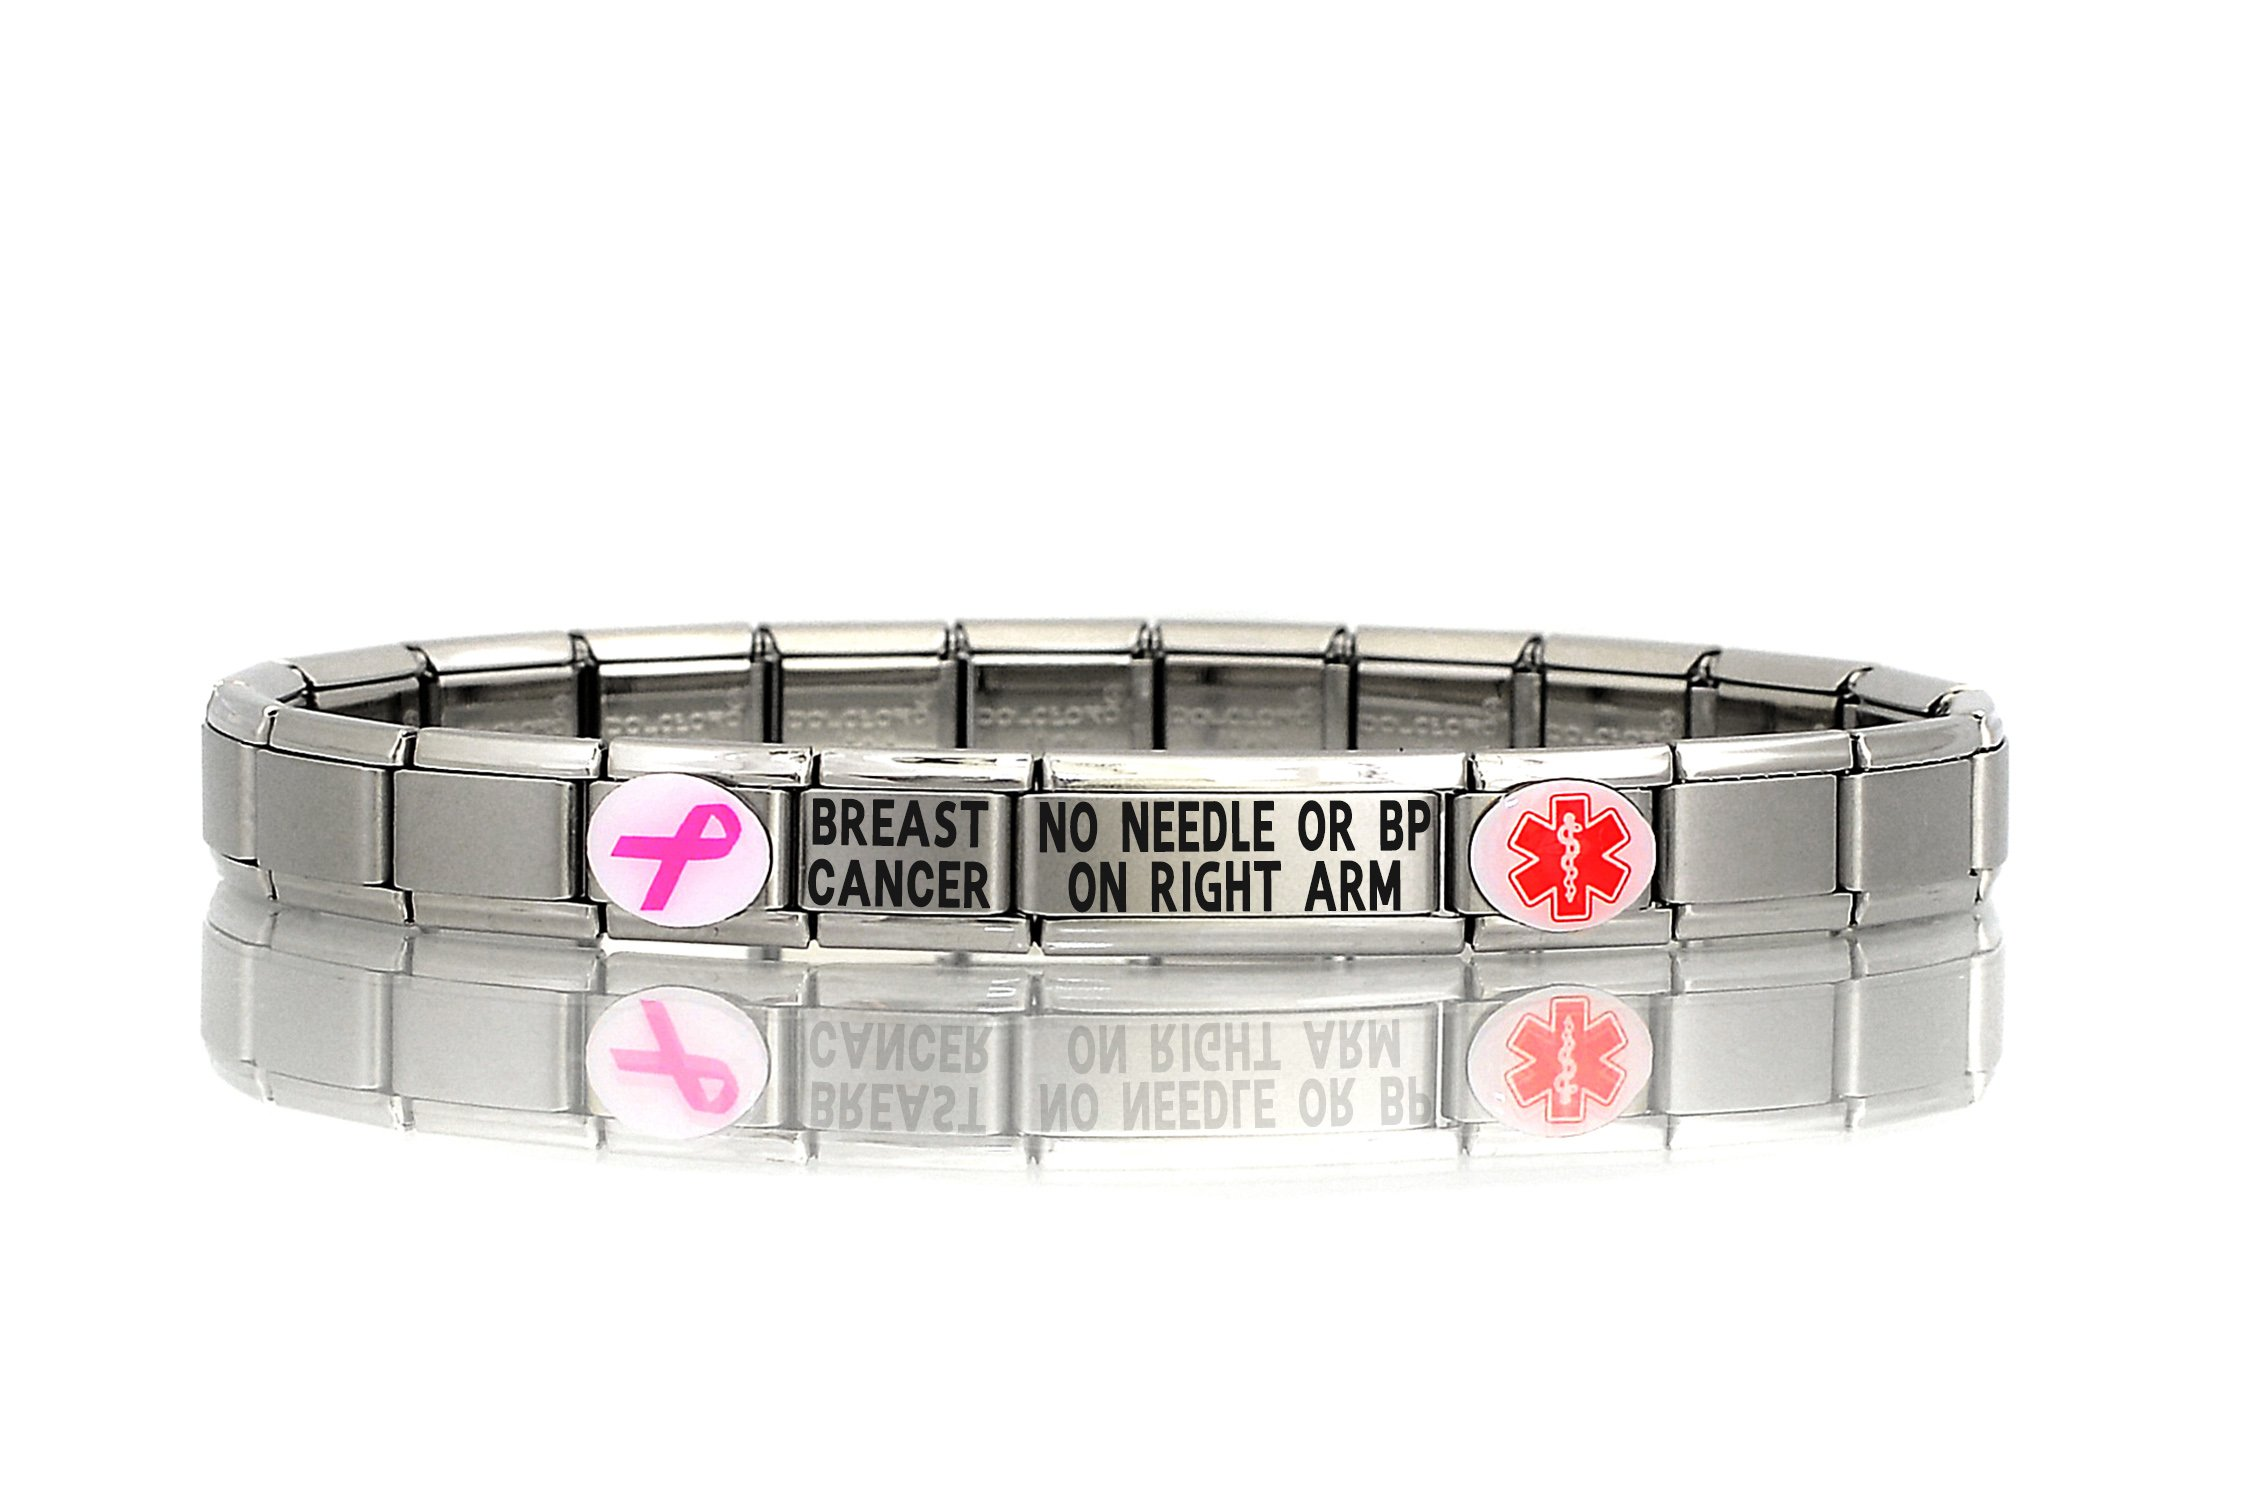 Dolceoro BREAST CANCER NO NEEDLE OR BP ON RIGHT ARM Medical ID Bracelet Alert - SELECT YOUR WRIST SIZE